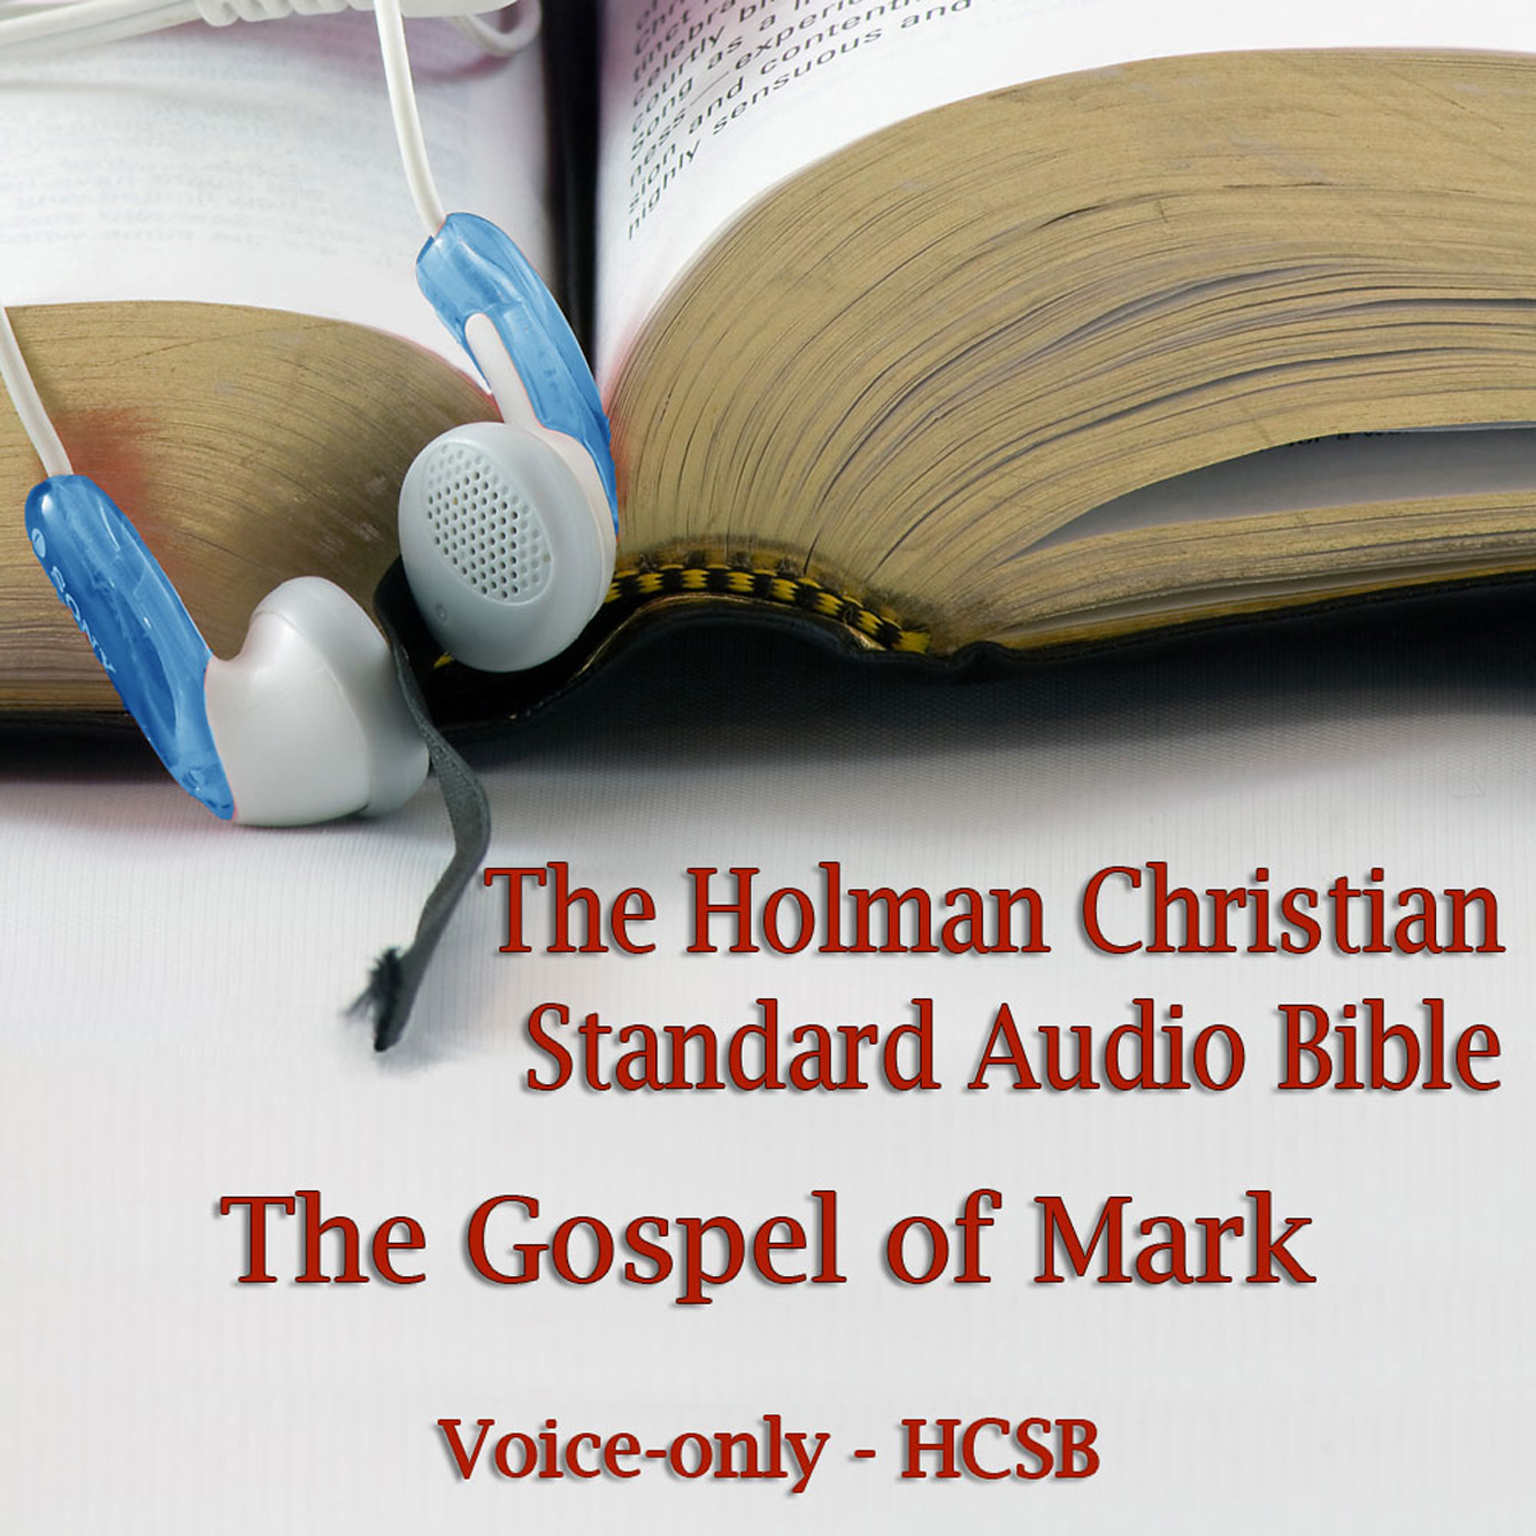 the call of the christian in the gospel of mark Gospel of mark study #8: the calling january 7, 2009 by michael step into the study, pour yourself a cup of coffee, get comfortable and let's enjoy the gospel of mark.